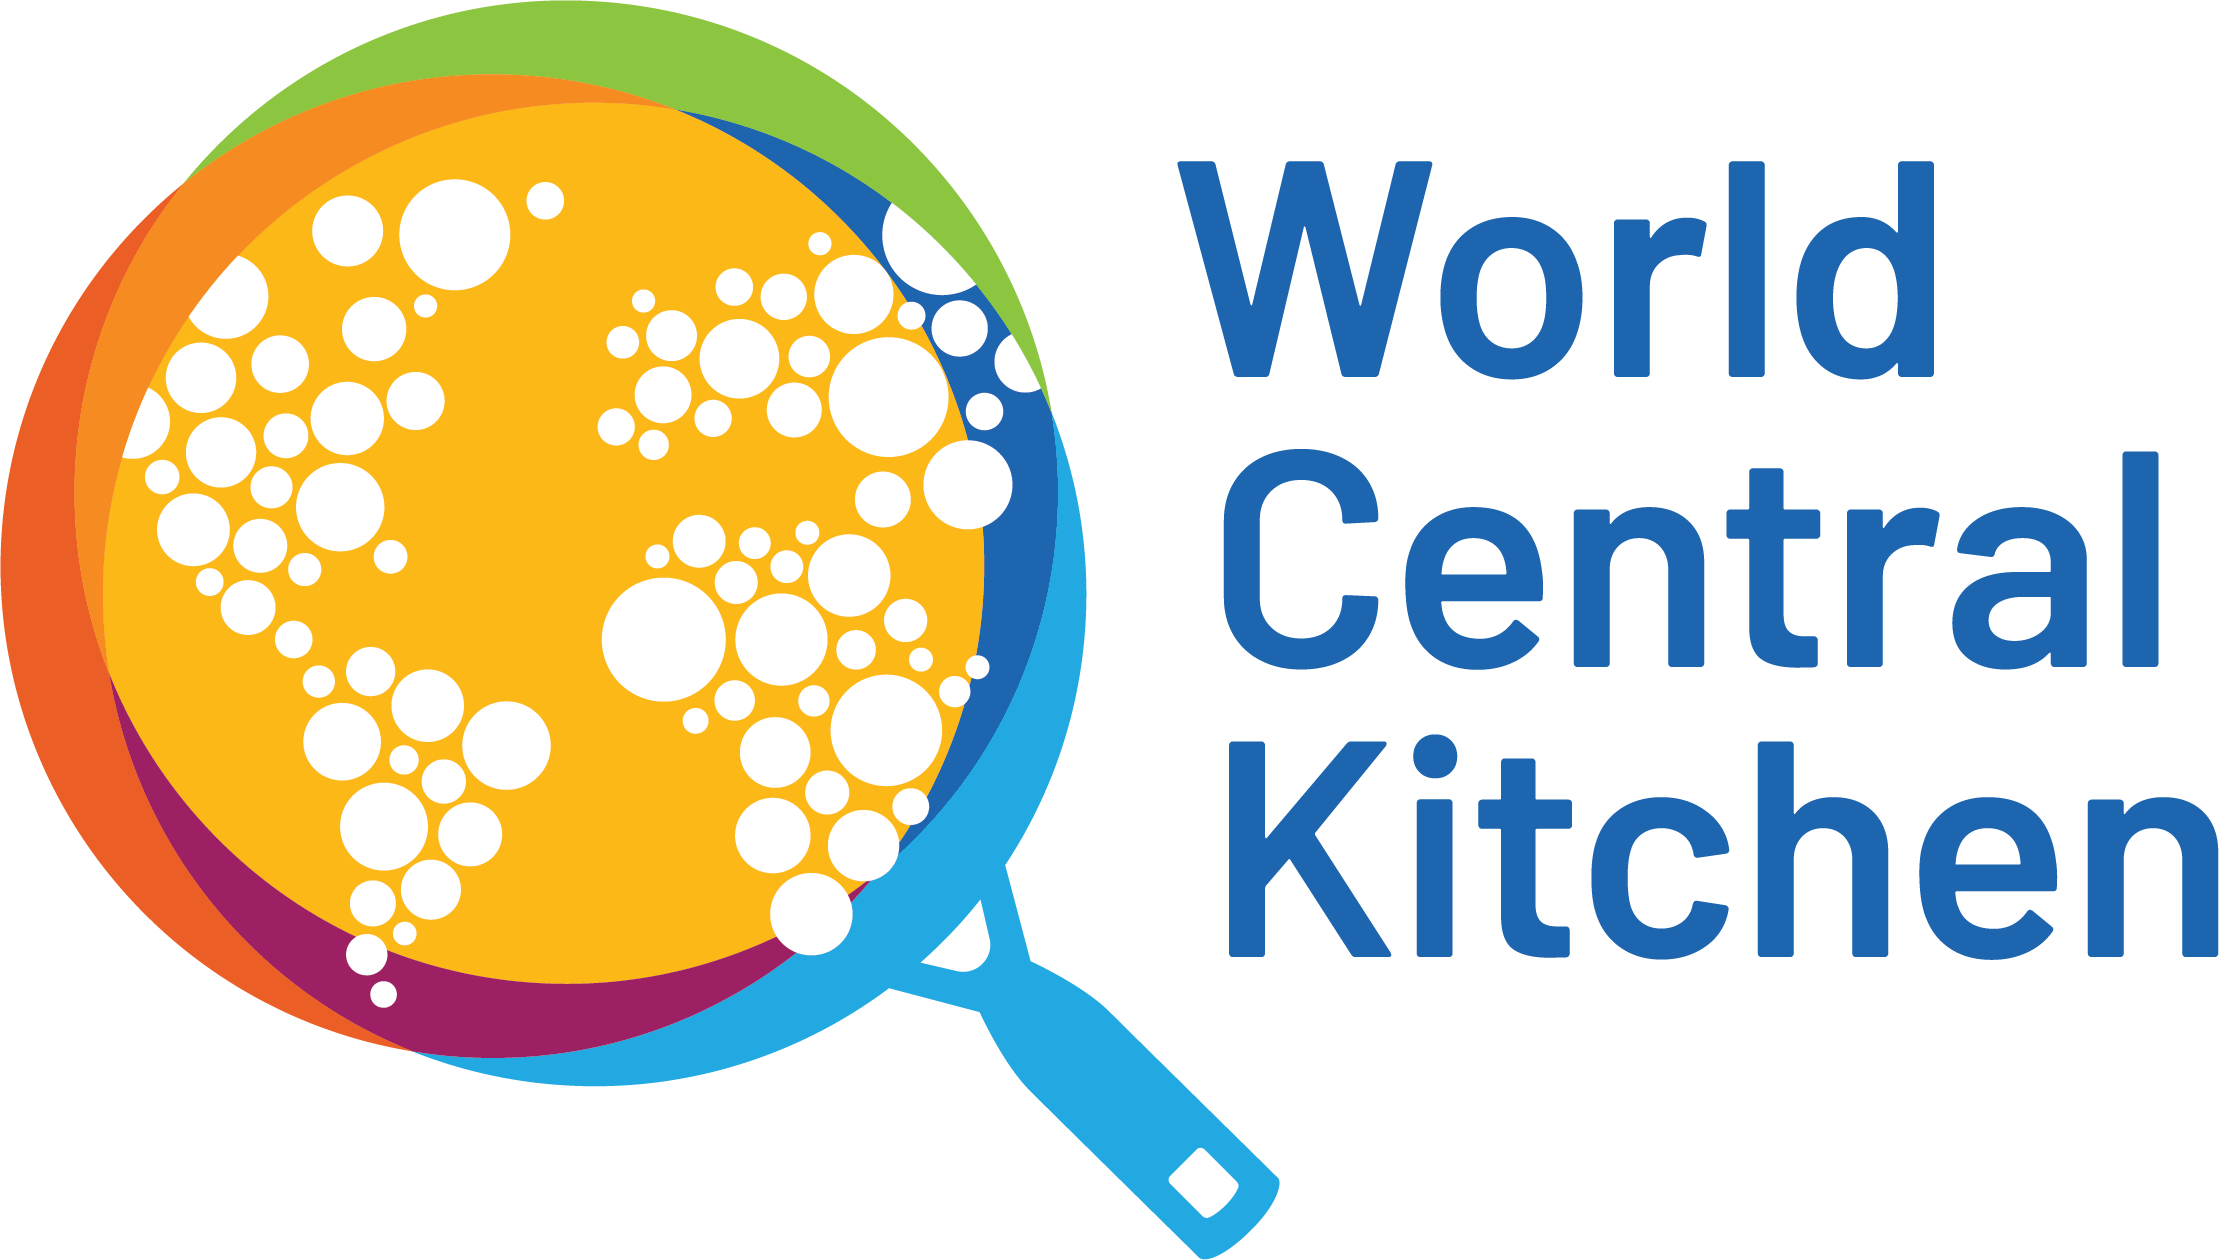 WORLD CENTRAL KITCHEN WORKS WITH CHEFS AND RESTAURANTS TO DISTRIBUTE MEALS TO THOSE IN NEED